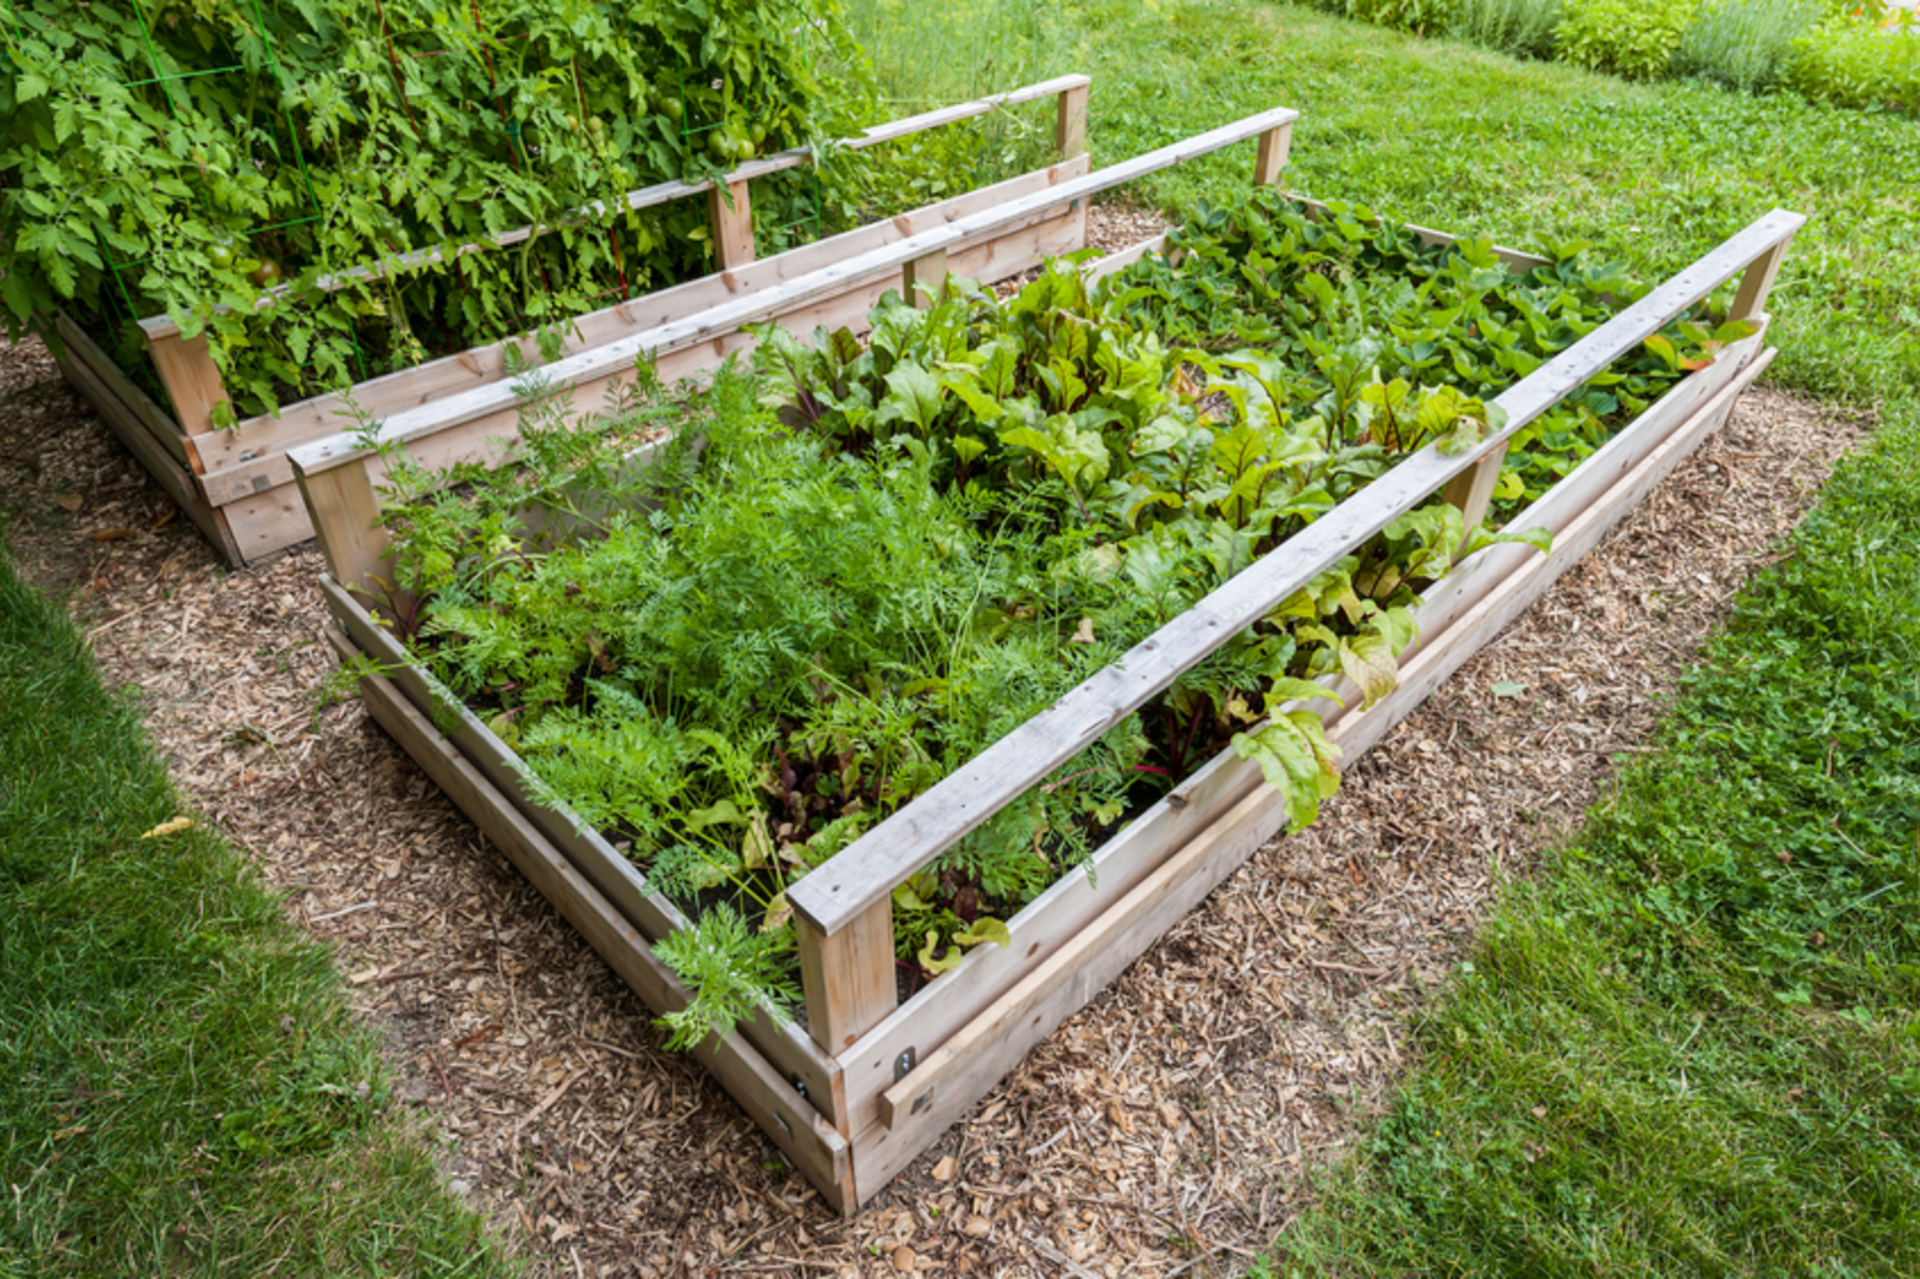 GROW YOUR OWN FOOD AND PROPERTY VALUE